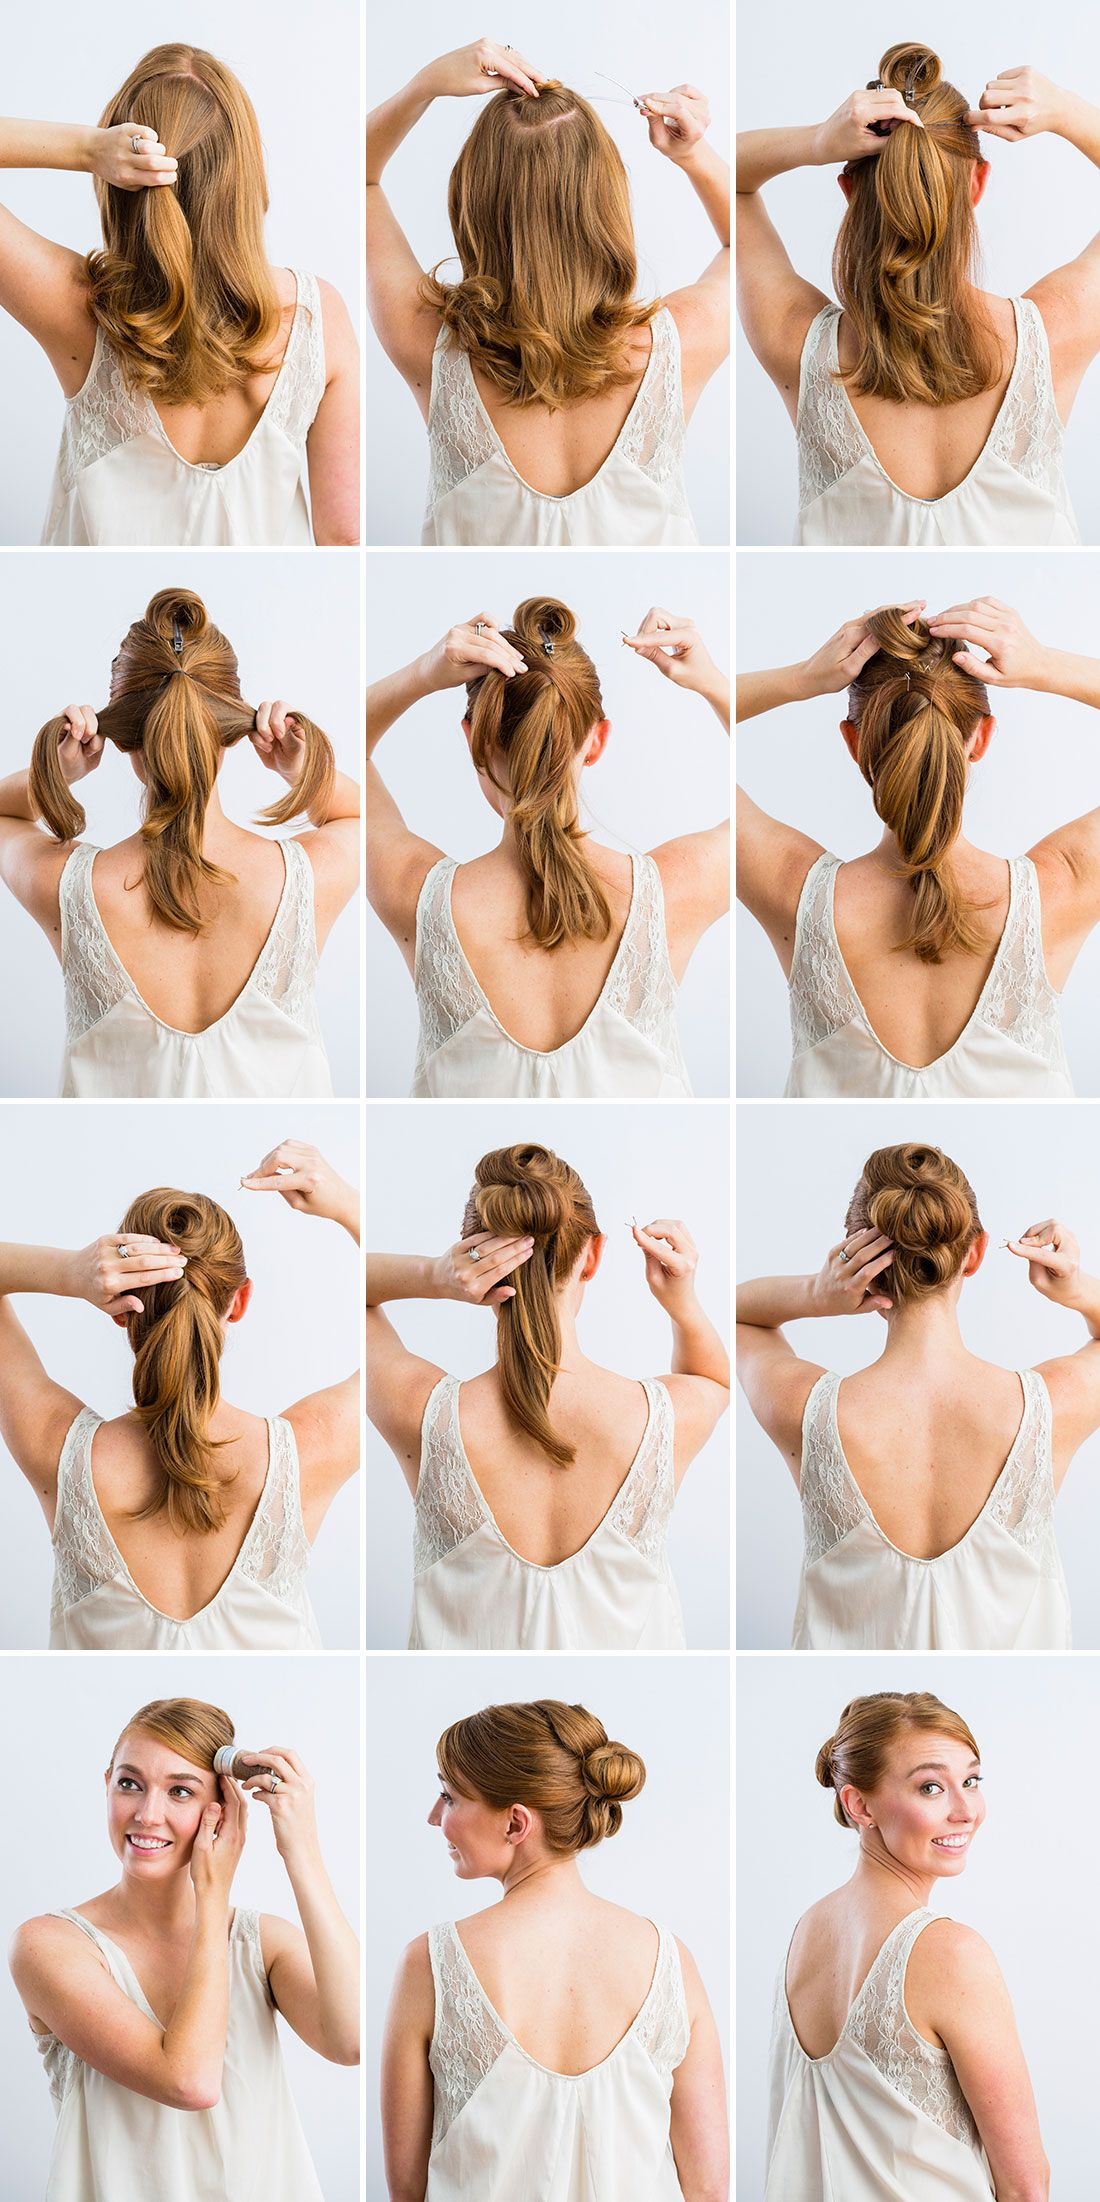 3 timeless bridal updos you can actually diy | beauty